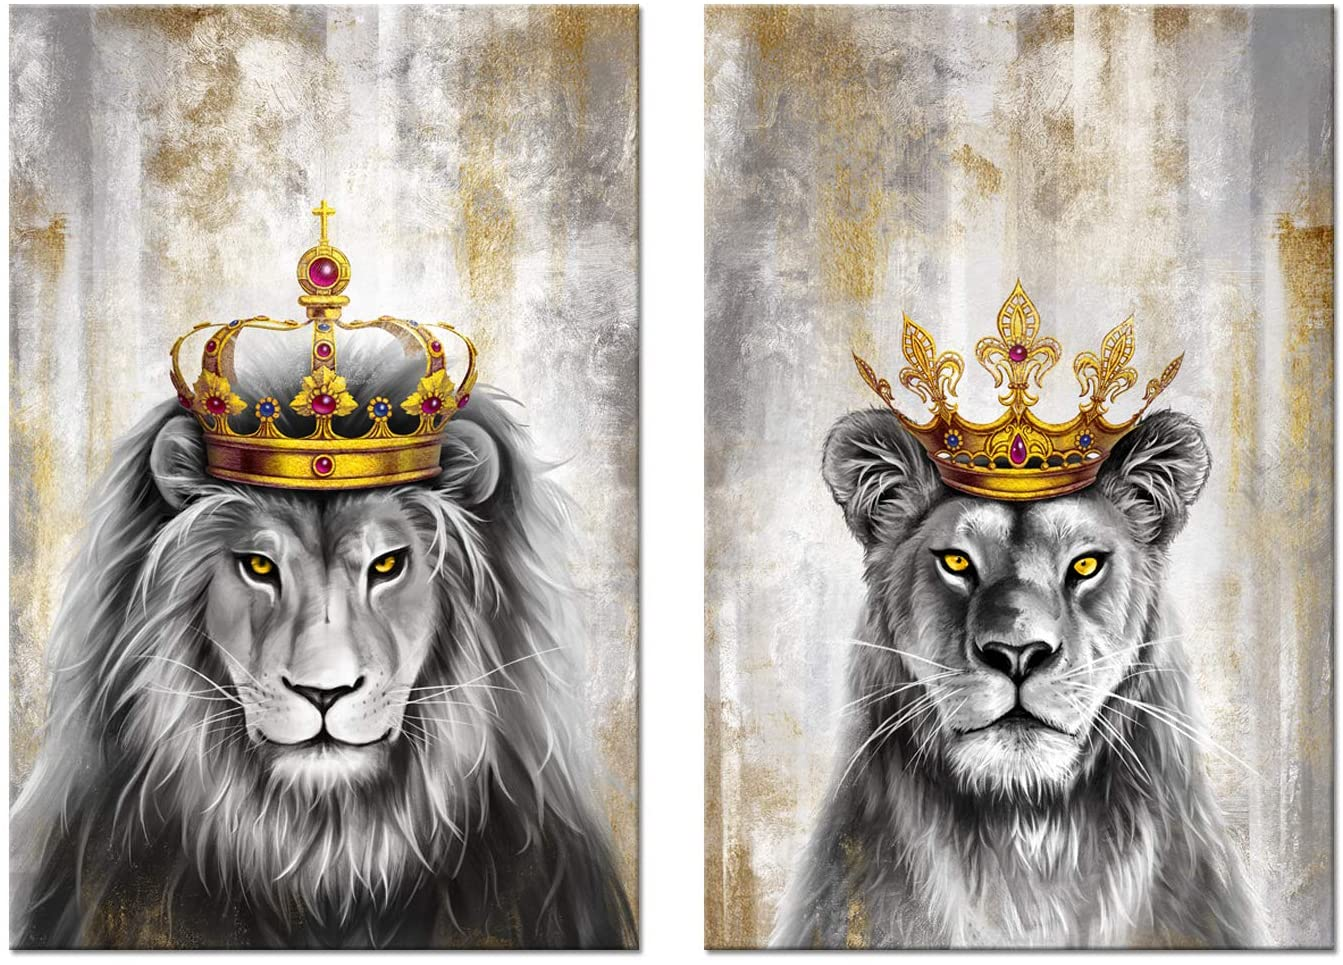 Zlove 2 Pieces Animal King Wall Art Lion Lioness Crown and Max 89% OFF with free shipping